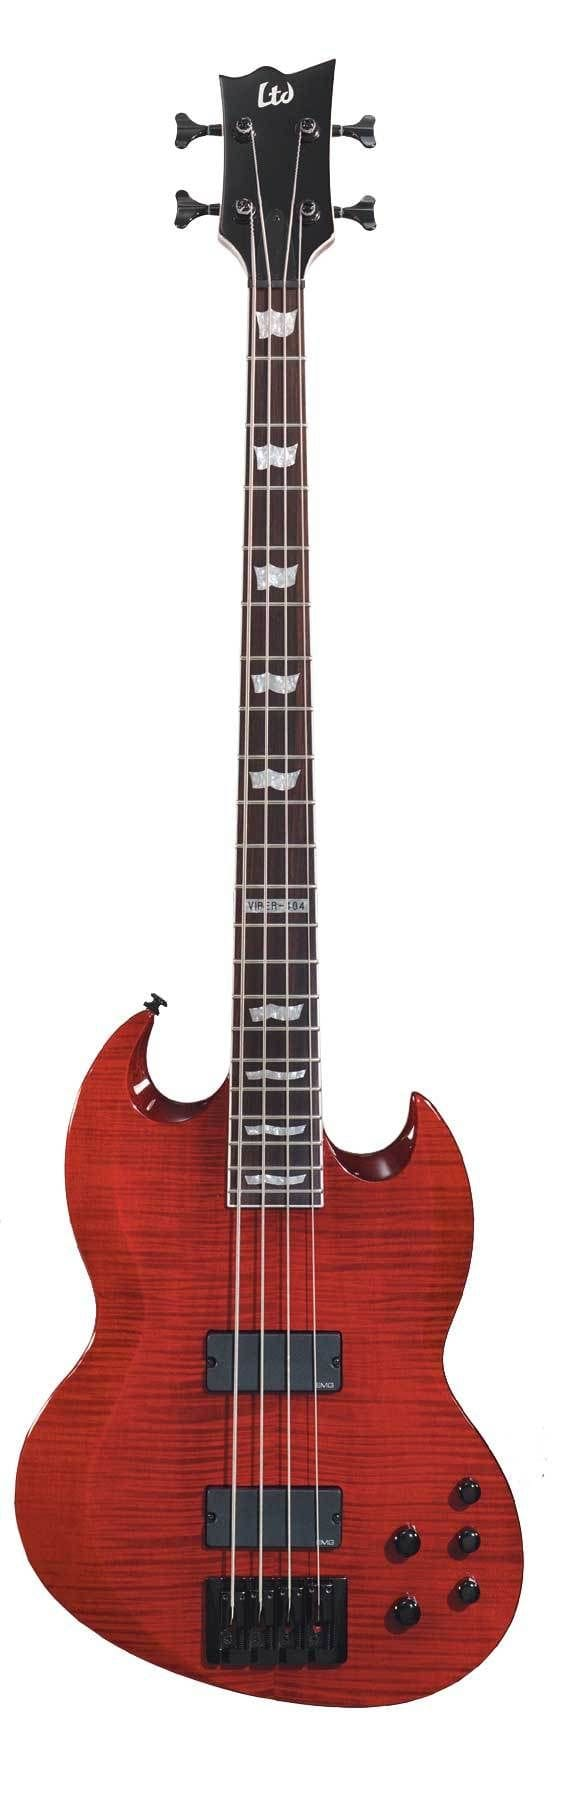 LVP-404STBC: LTD VP-404 STBC VIPER BASS FLAME TOP